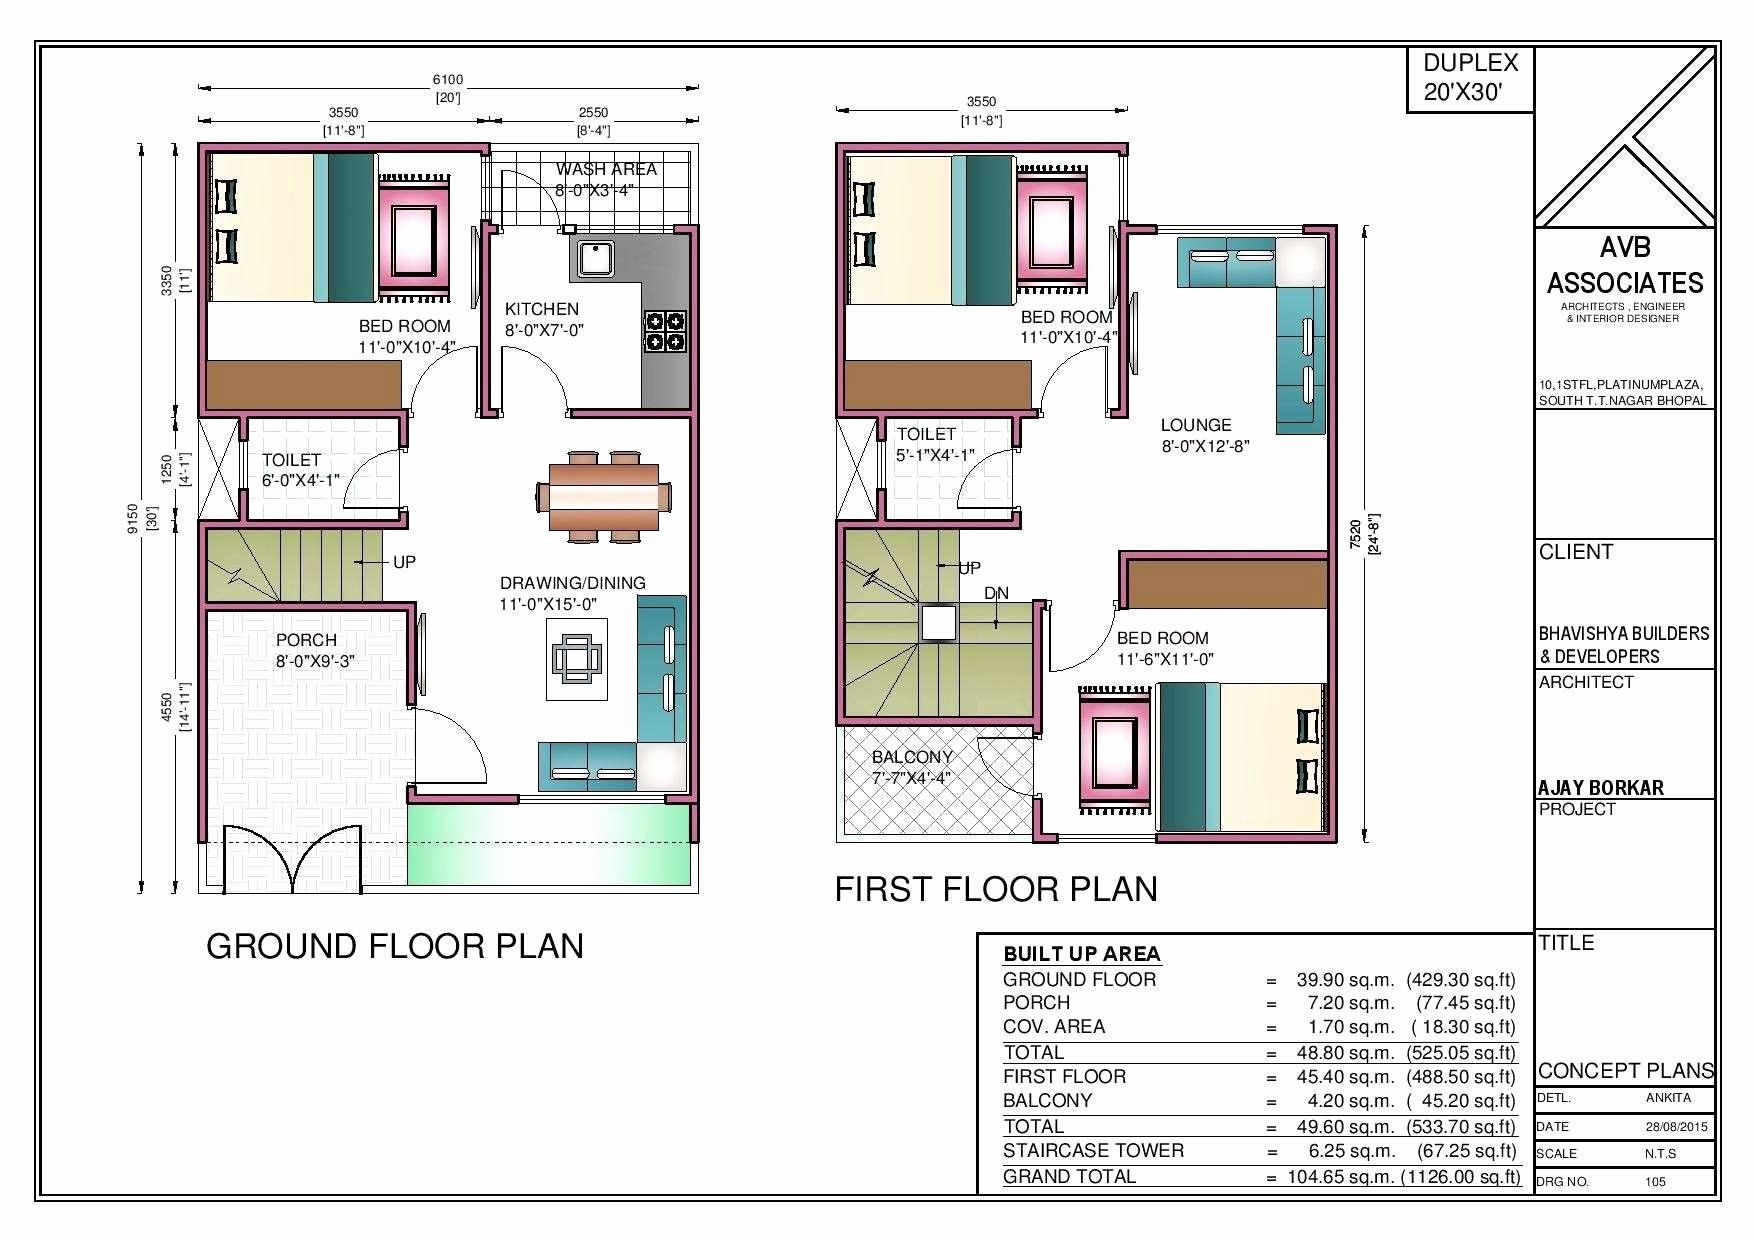 20 X 20 House Plans Fresh 44 20x50 House Plan For House Plan In 2020 20x30 House Plans House Construction Plan Duplex House Plans